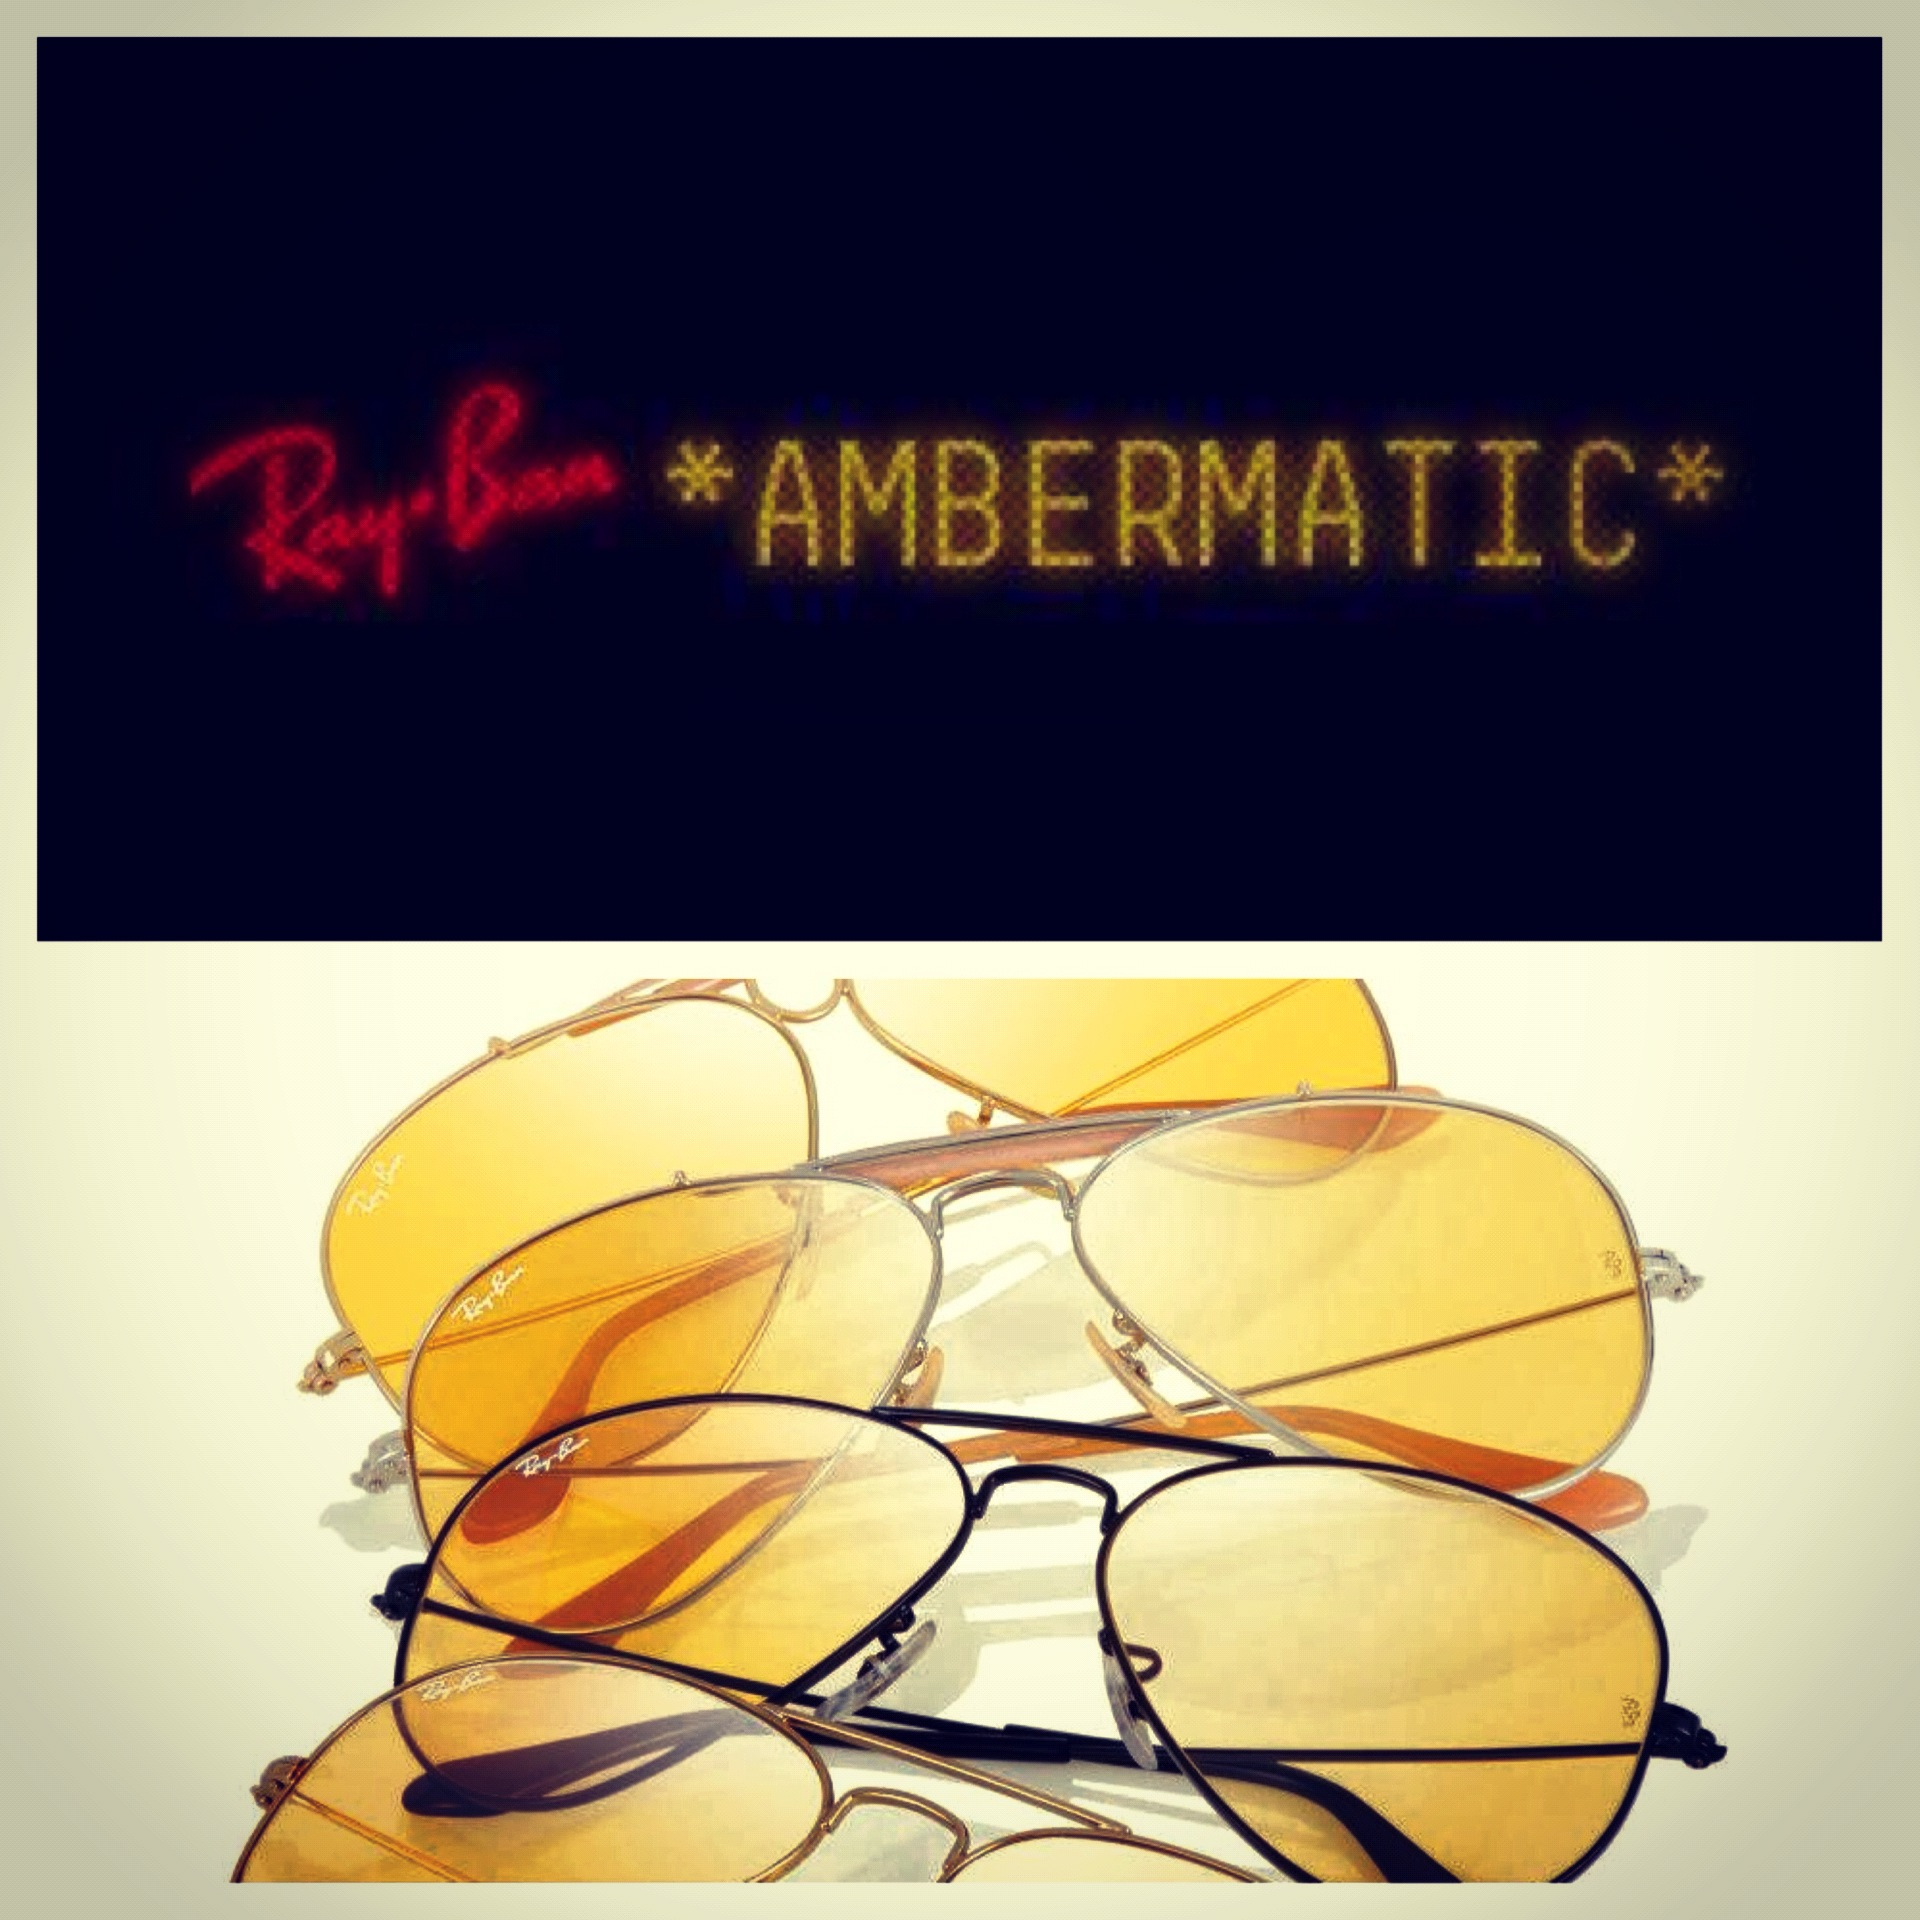 ray ban ambermatic shadesdaddy sunglasses